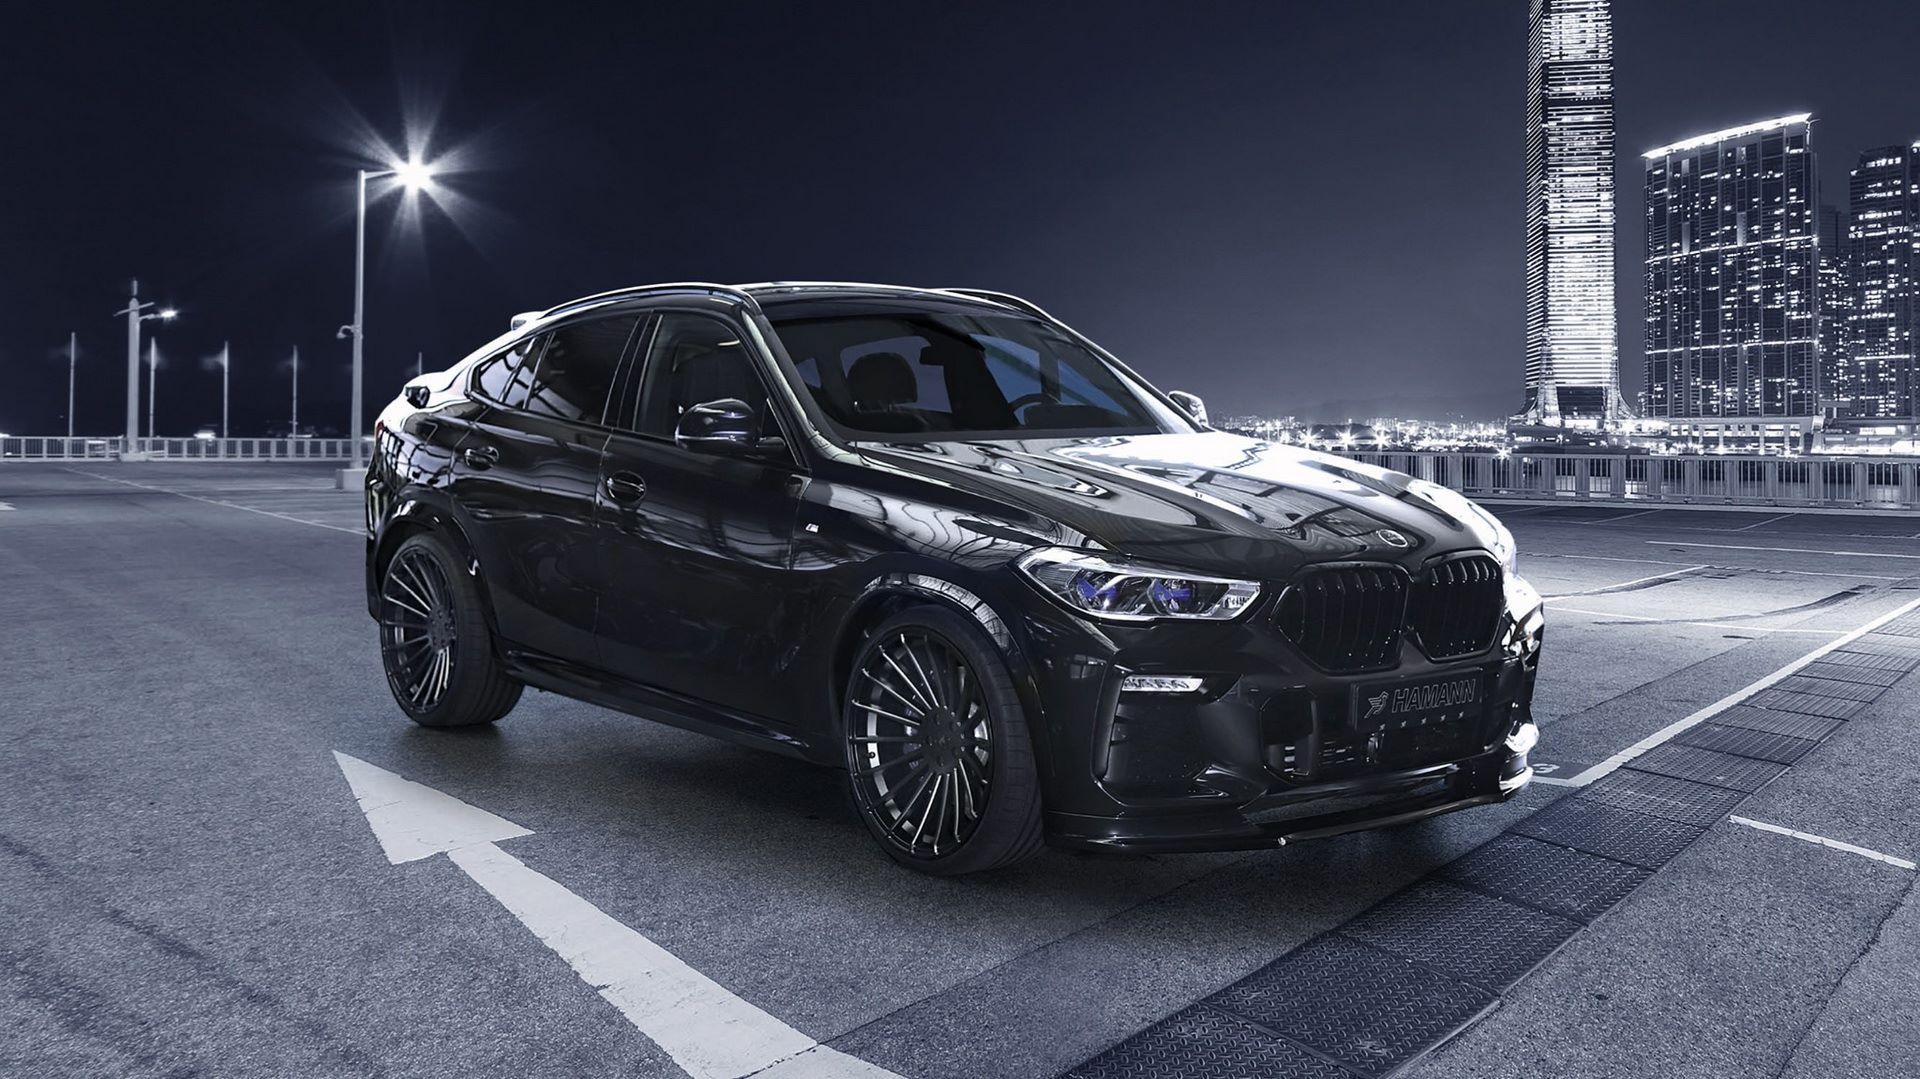 BMW-X6-by-Hamann-1